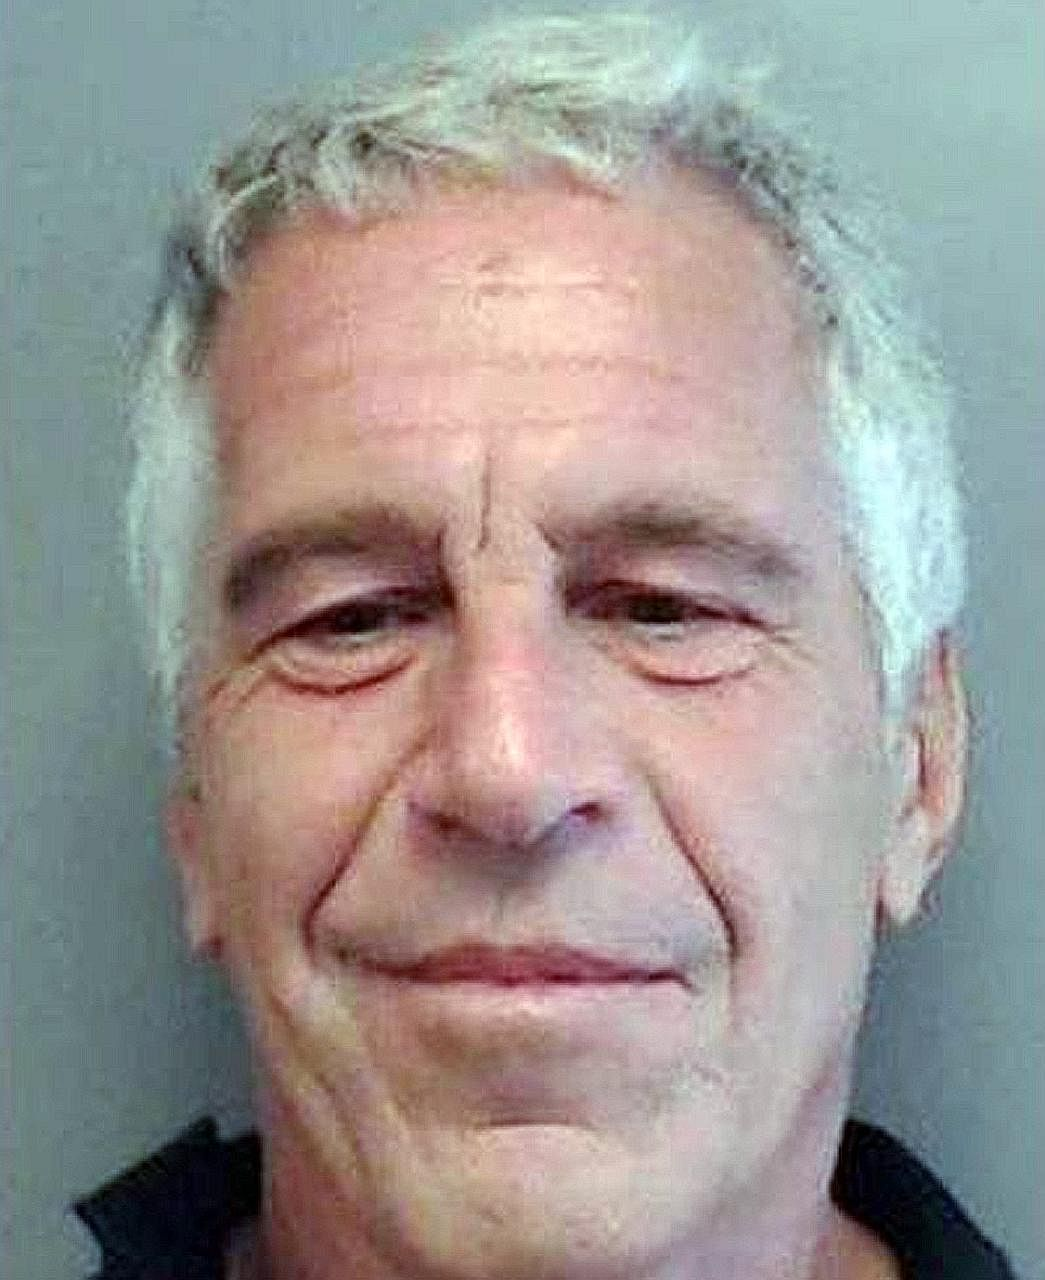 Jeffrey Epstein, accused of paying underage girls for sexual massages a decade ago, had pleaded guilty in a plea deal.